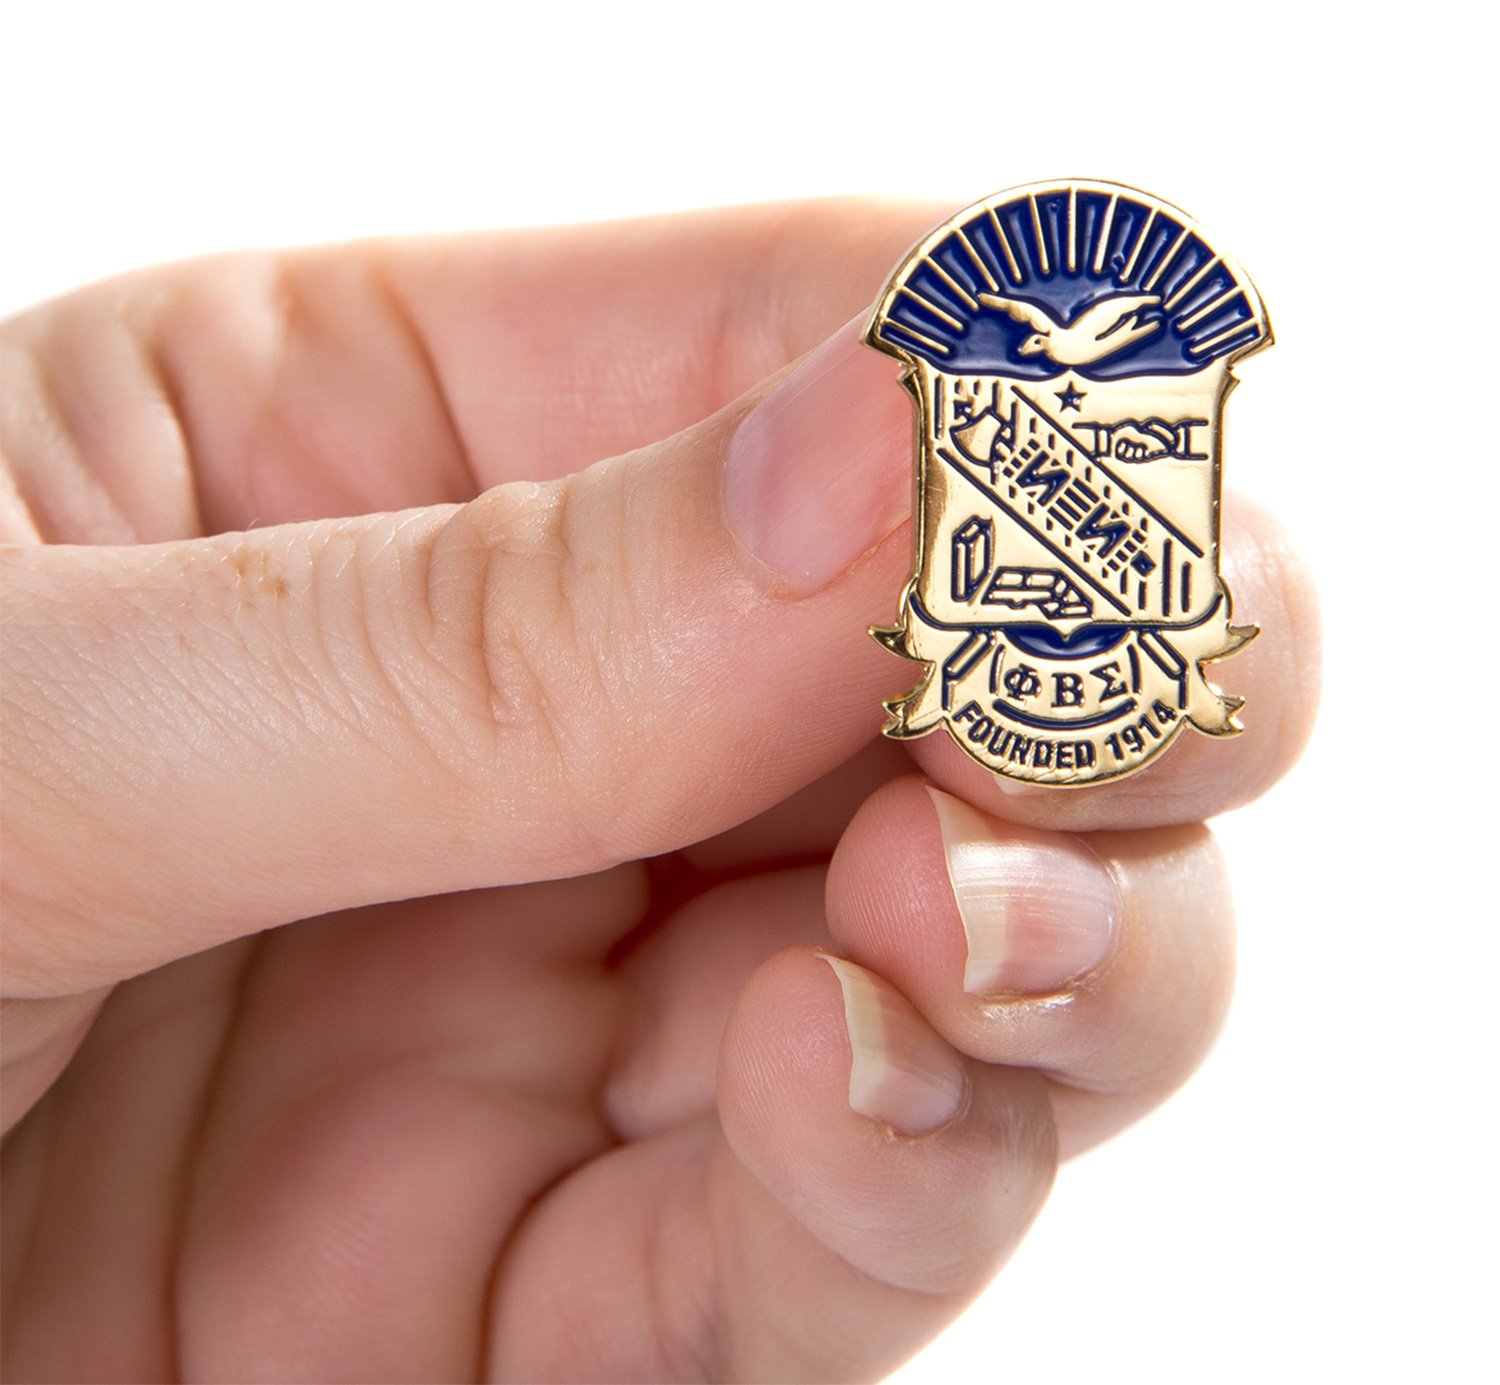 Desert Cactus Phi Beta Sigma Fraternity Crest Lapel Pin Enamel Greek Formal Wear Blazer Jacket (Gold Color Lapel Pin) by Desert Cactus (Image #3)